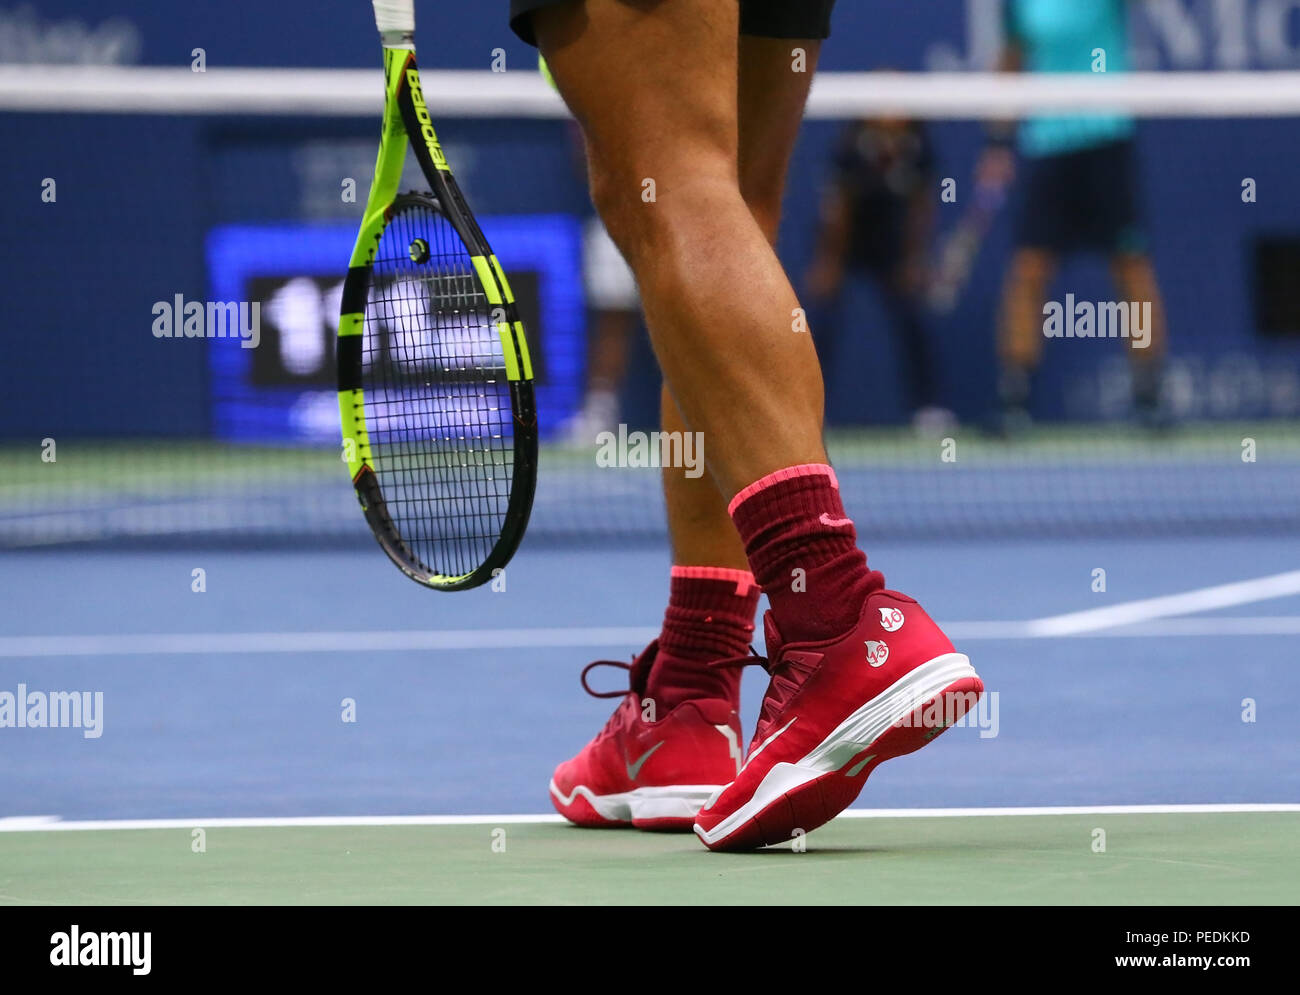 newest 5a2db 29ebb Grand Slam champion Rafael Nadal of Spain wears custom Nike tennis shoes  during US Open 2017 final match